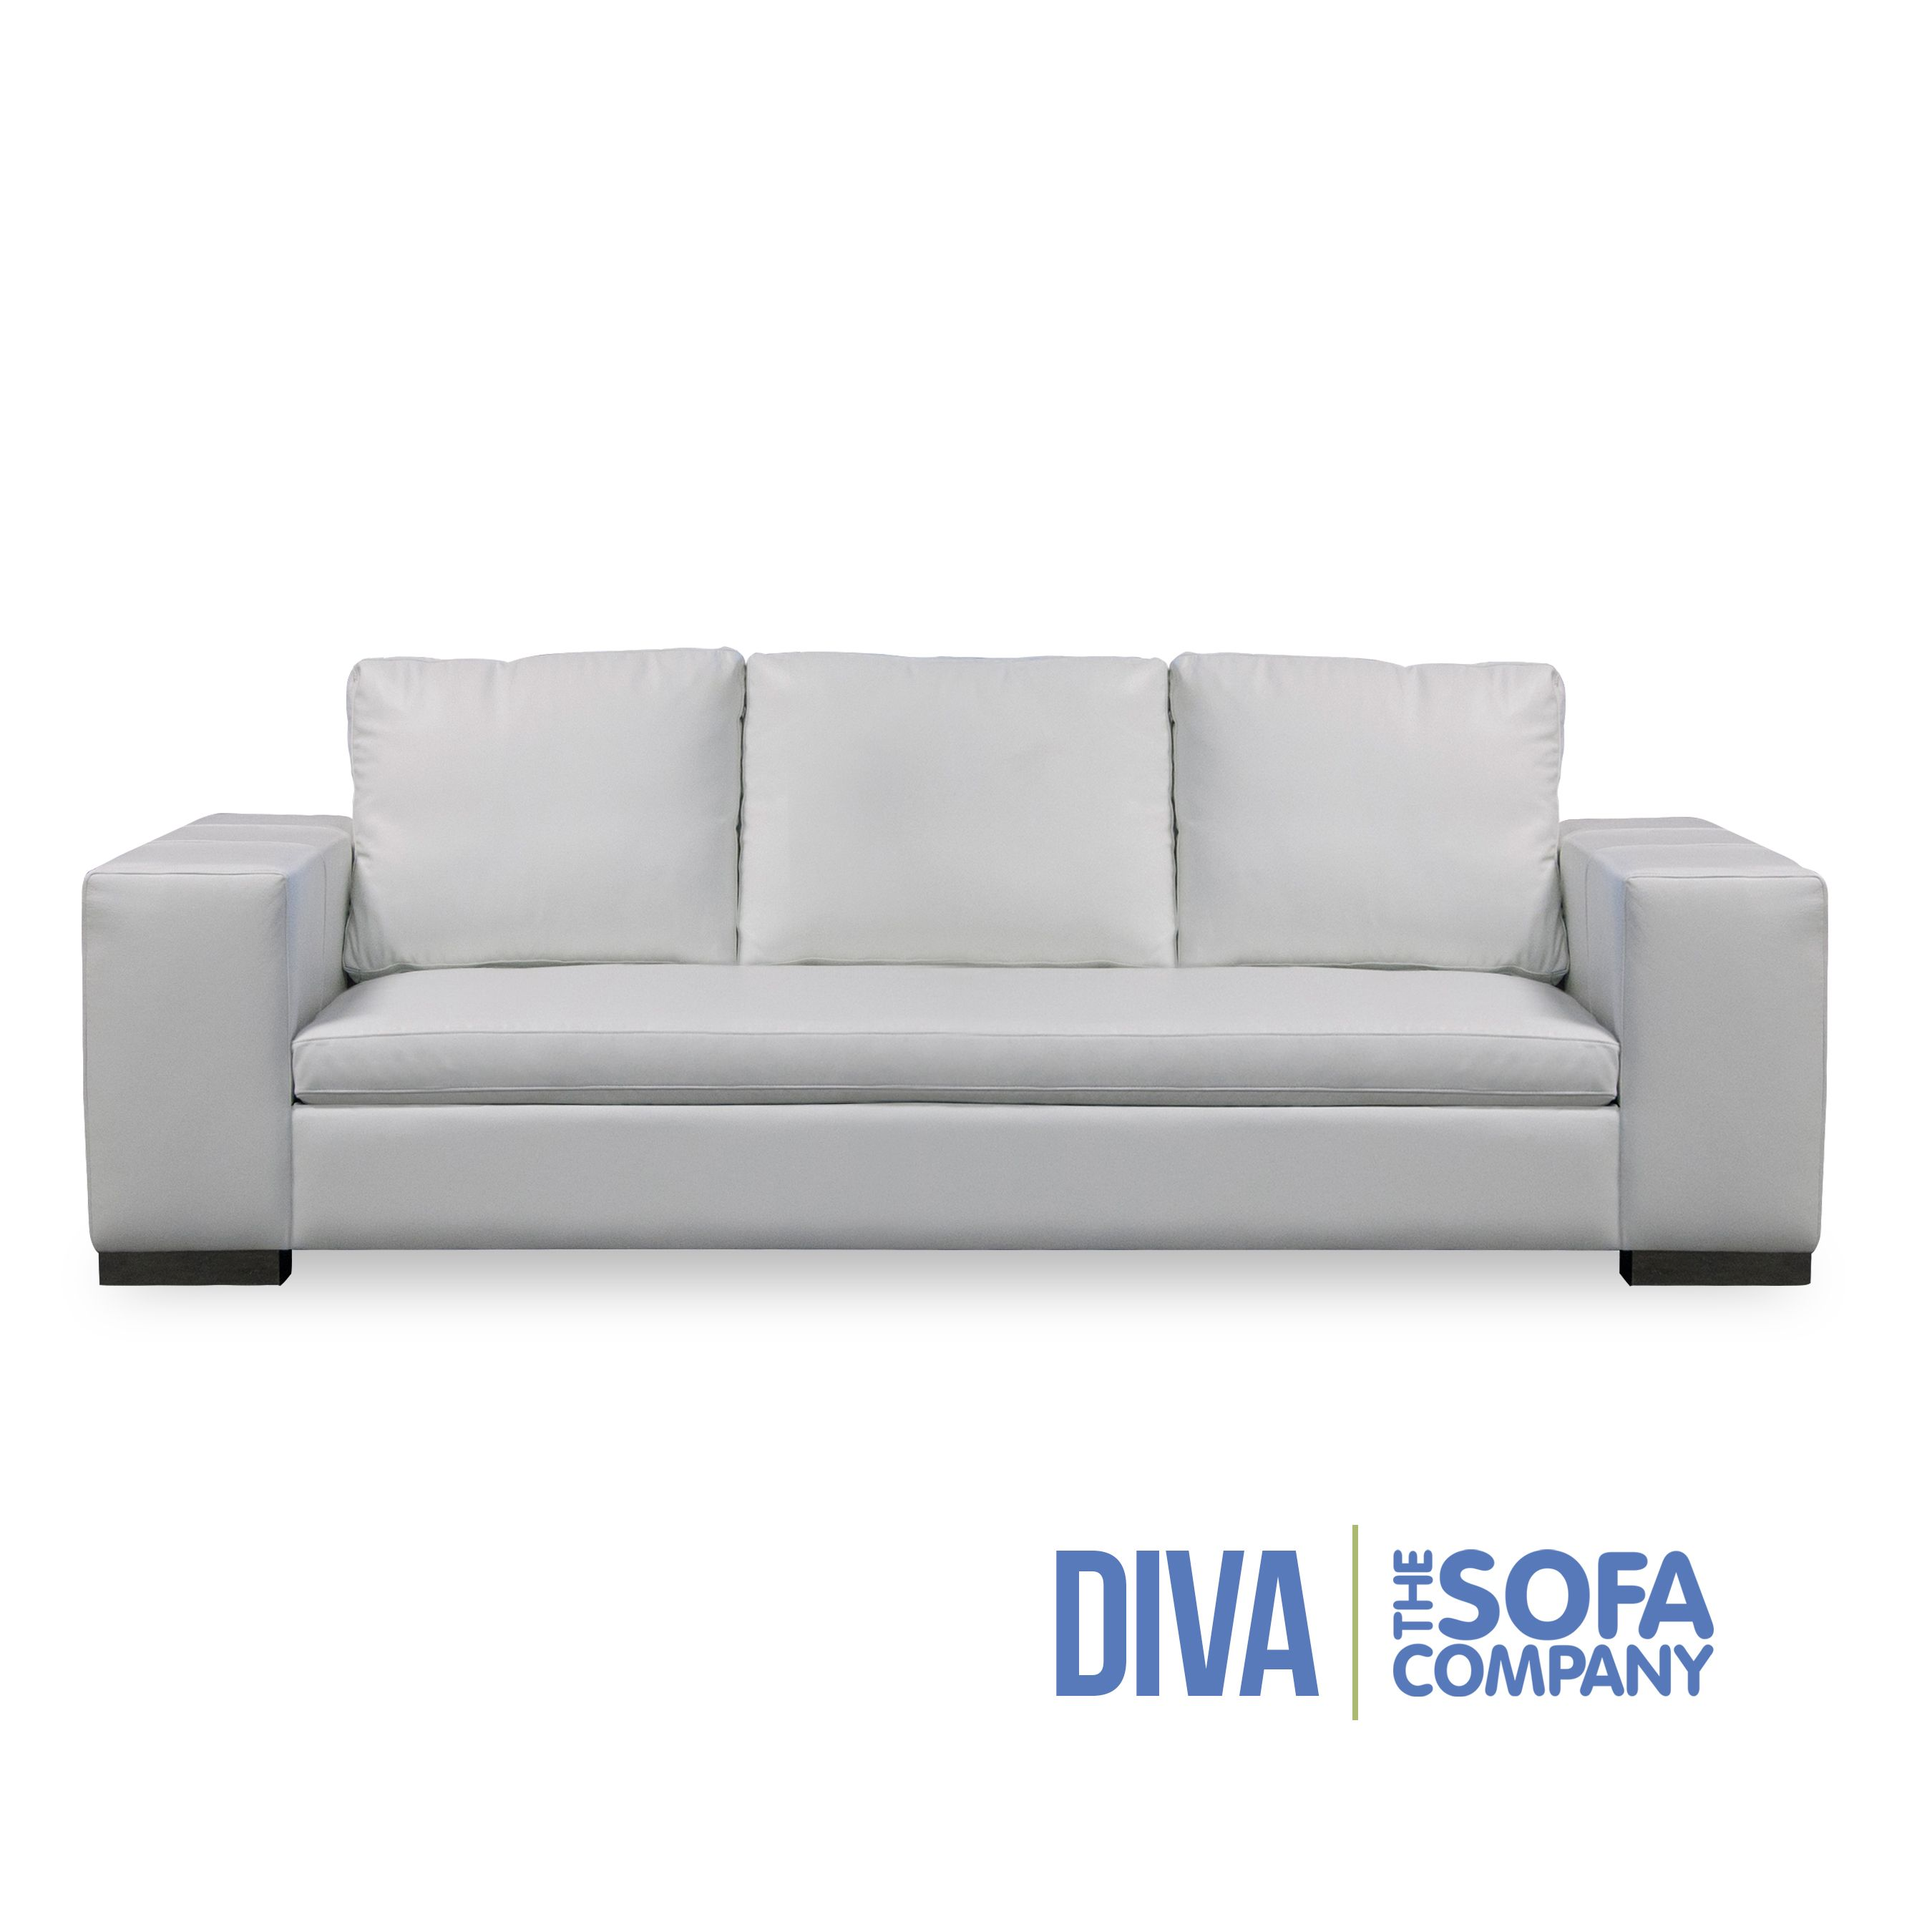 Bentley Sofas Custom Sofa Sofa Sofa Company